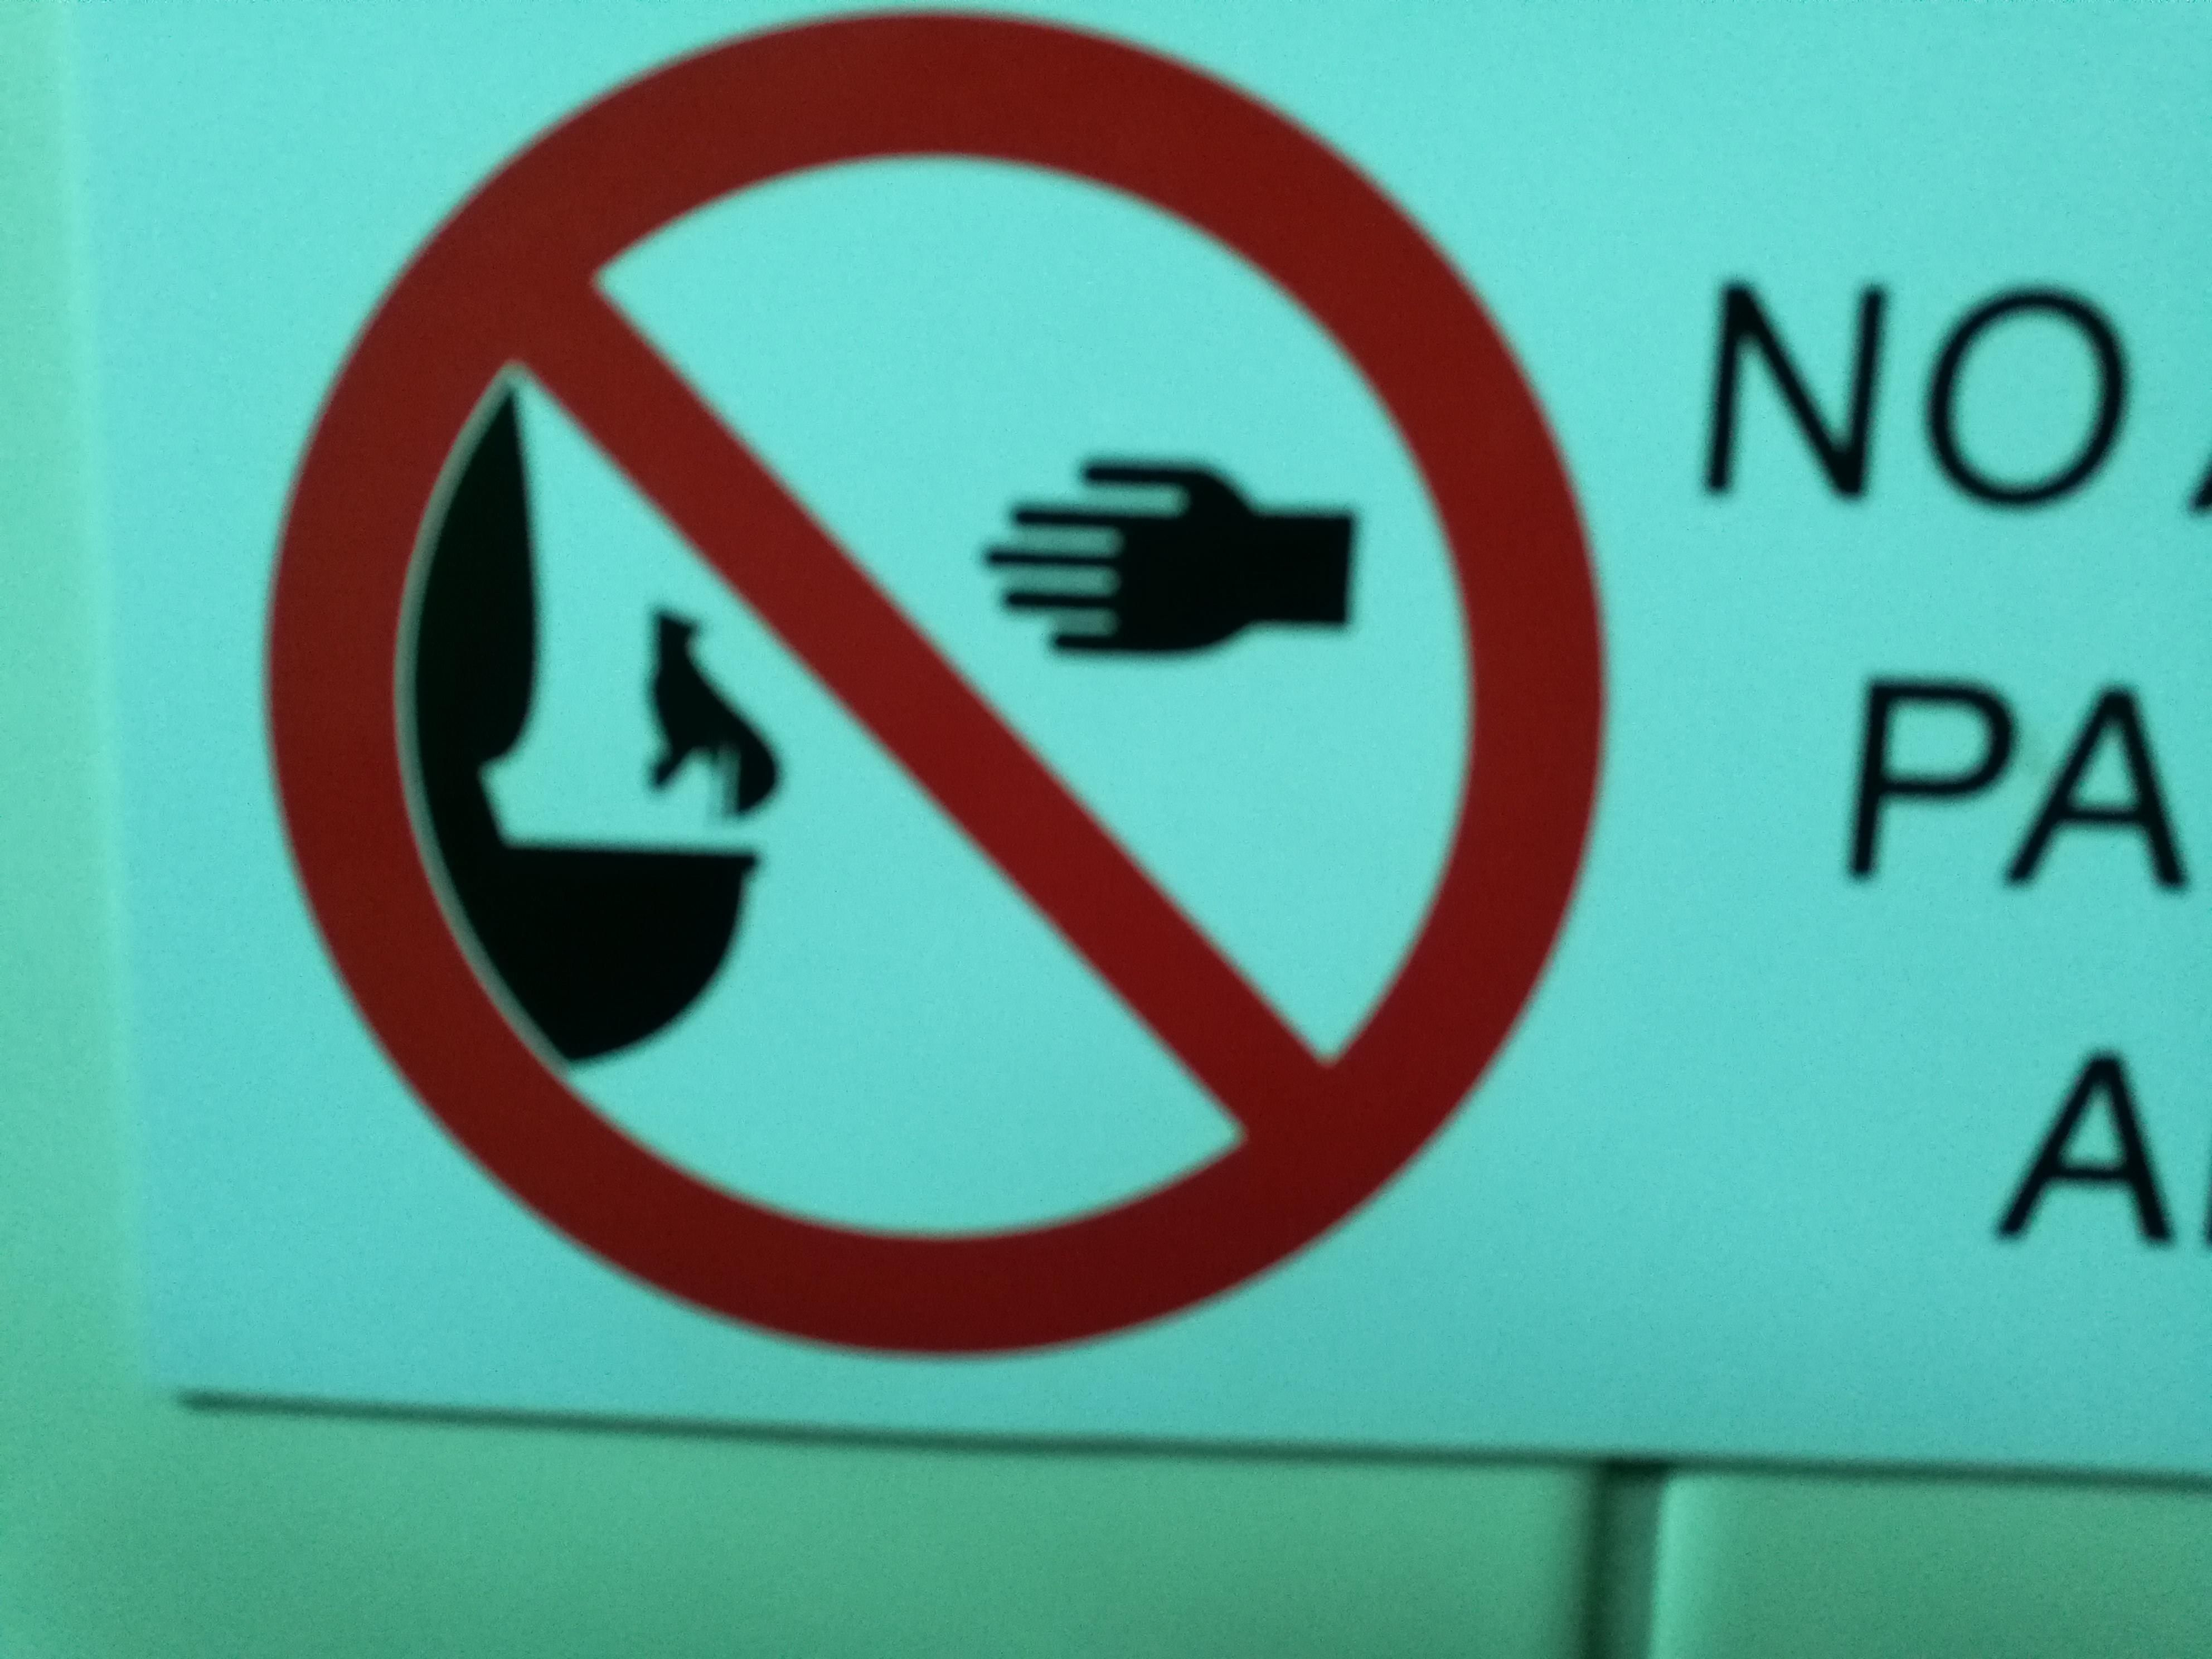 Please do not throw cats in the toilet.